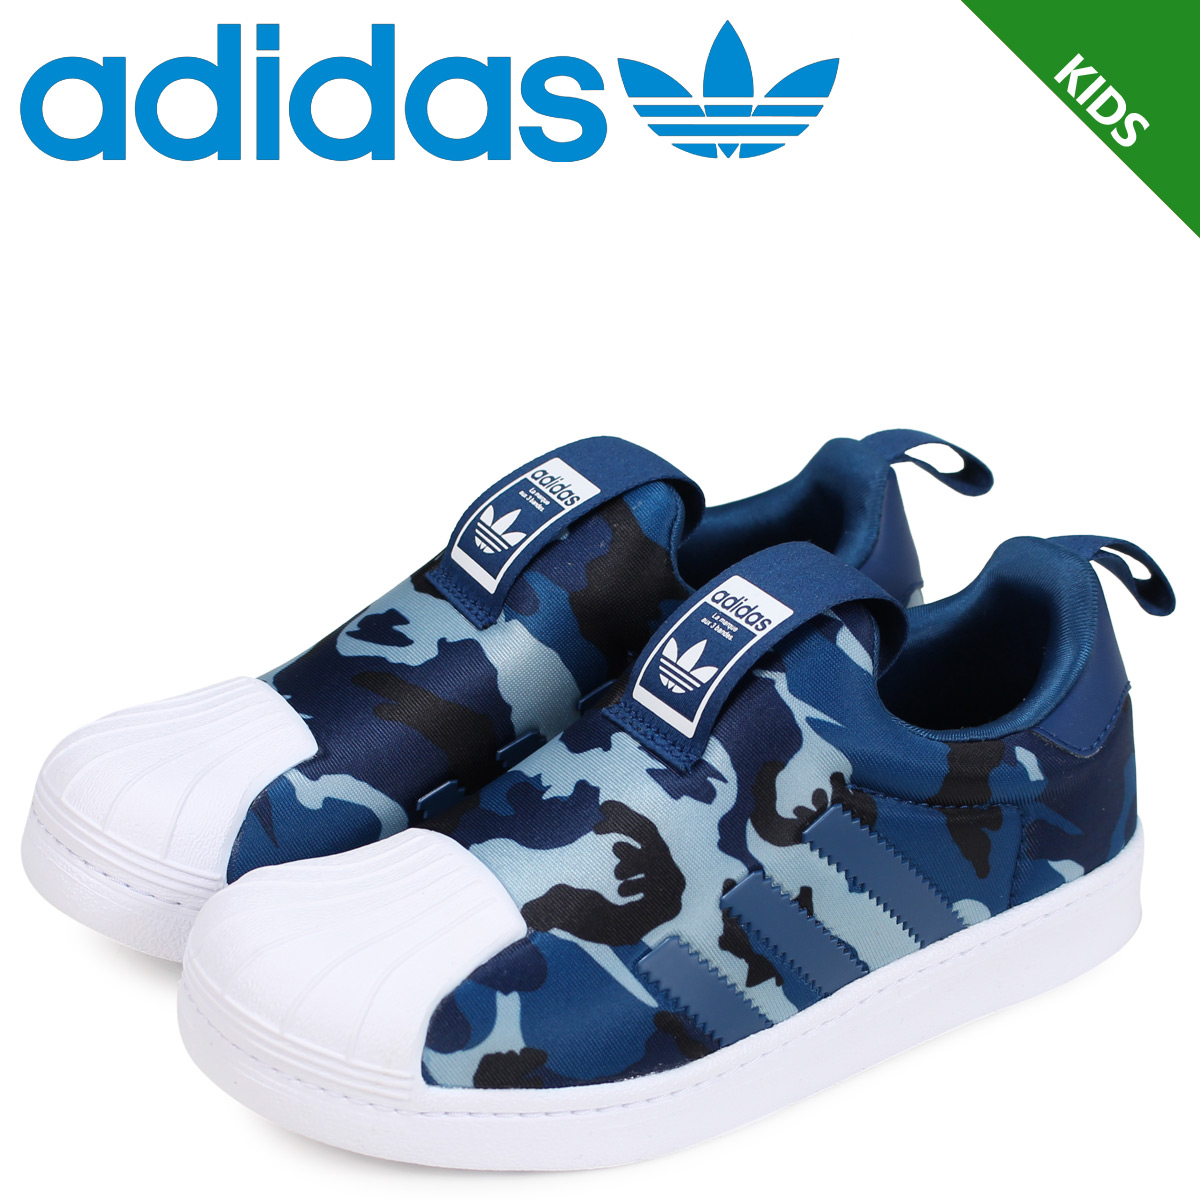 Sugar Online Shop: adidas Originals superstar